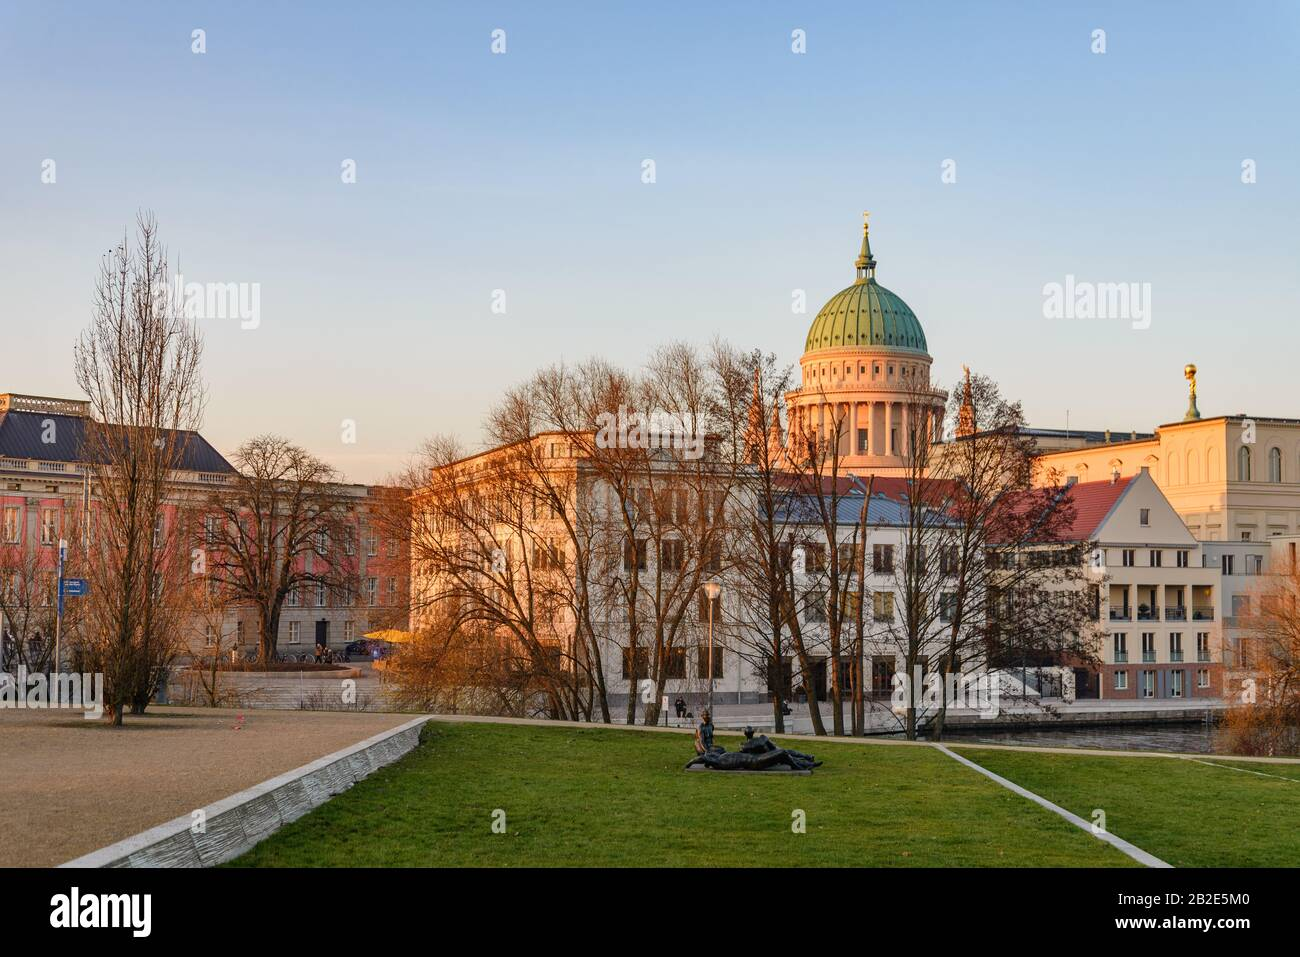 Outdoor waterside of Alte Fahrt river and background of Potsdam city centre and tower of St. Nikolaikirche,  Evangelical Church, in Potsdam, Germany. Stock Photo